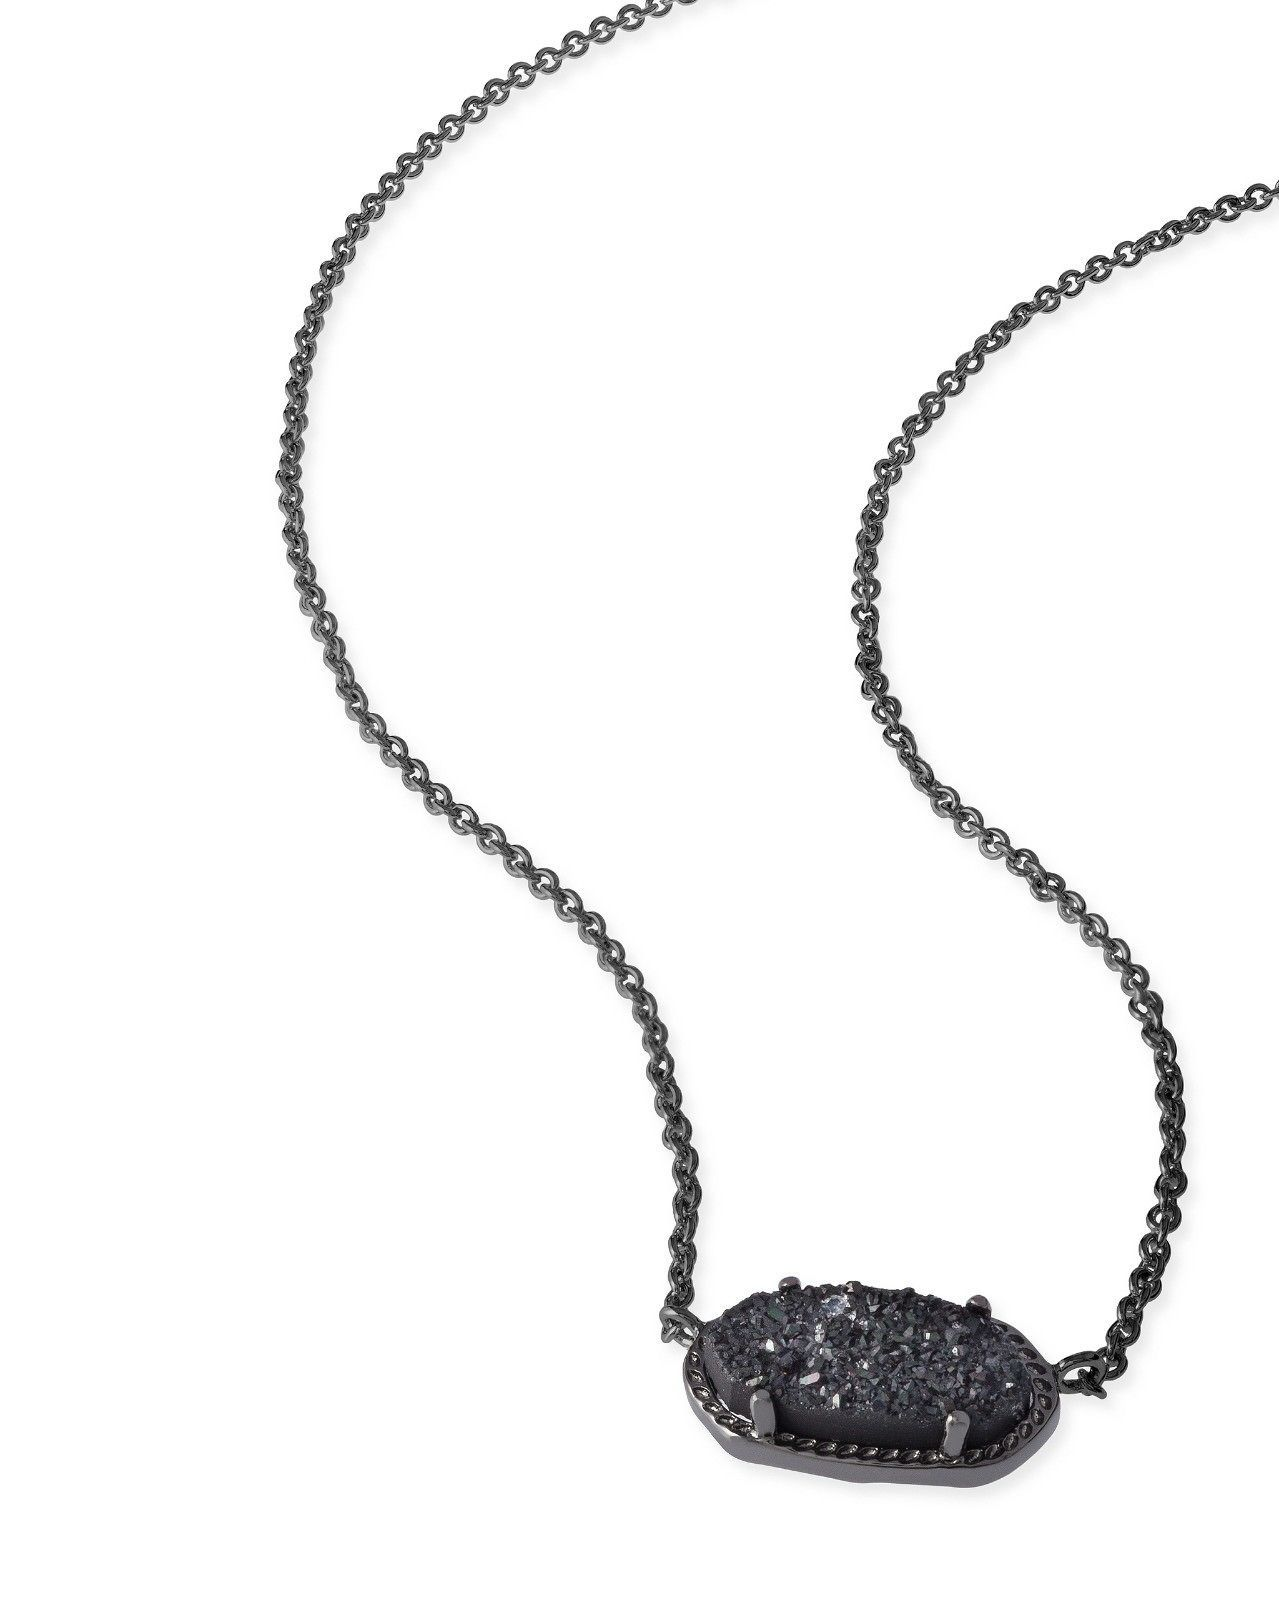 Kendra scott elisa oval pendant necklace in black drusy and gunmetal